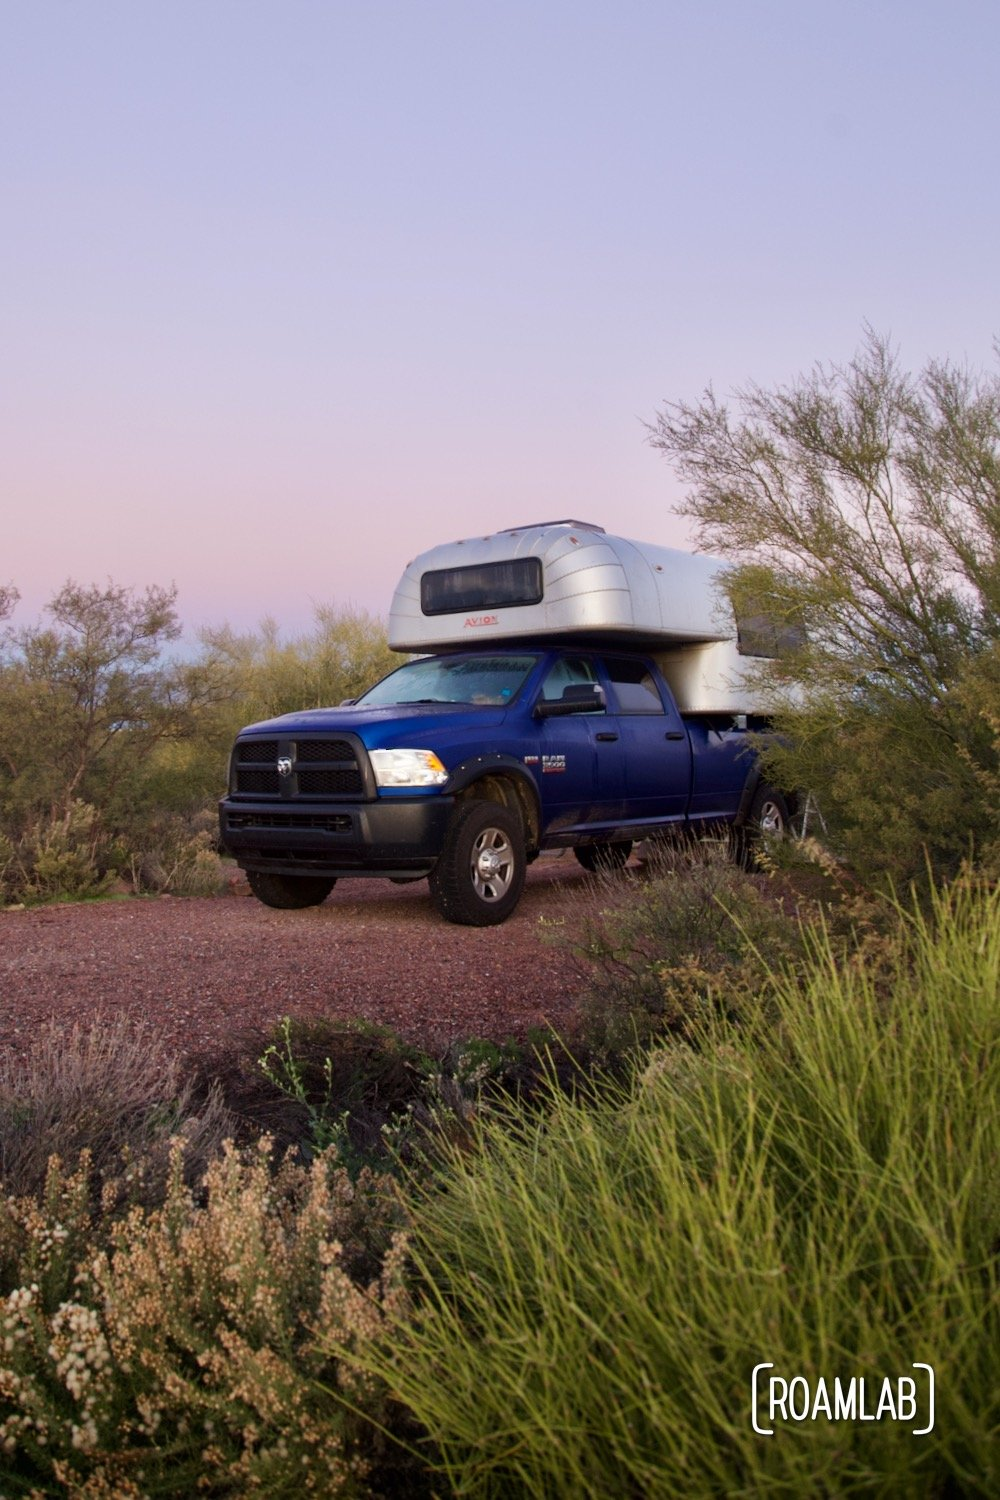 1970 Avion C11 truck camper parked among desert shrubbery at Cholla Campground.